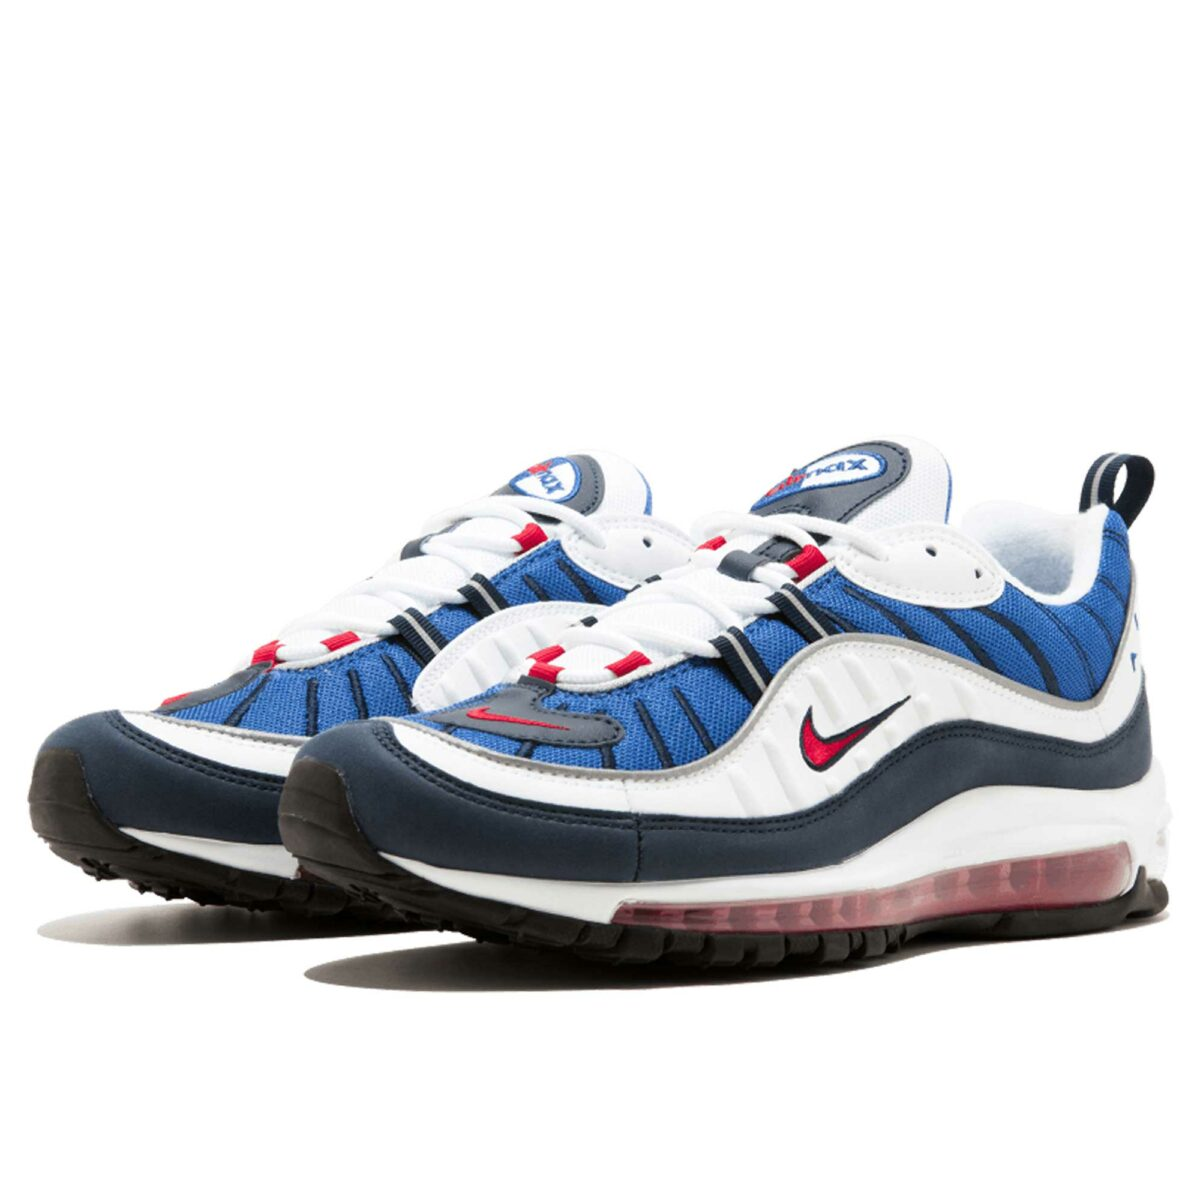 nike air max 98 blue white 640744_100 купить